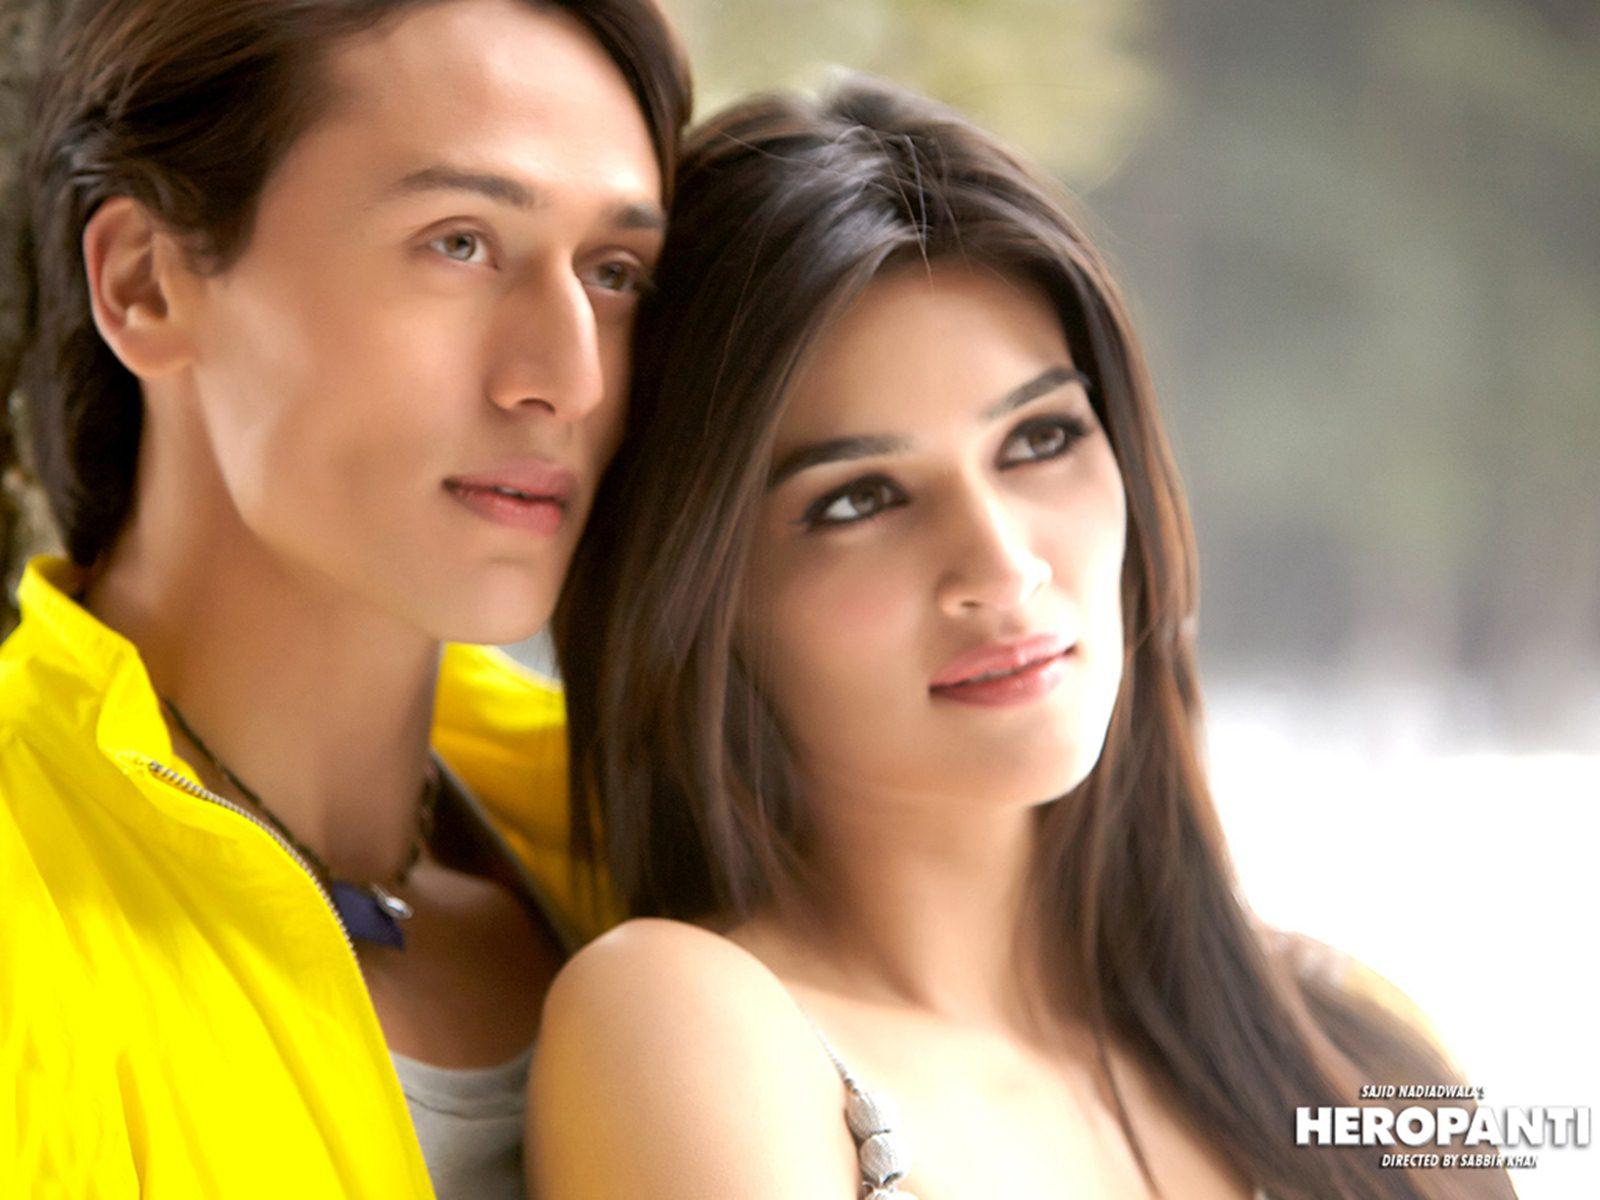 heropanti - movie hd wallpapers